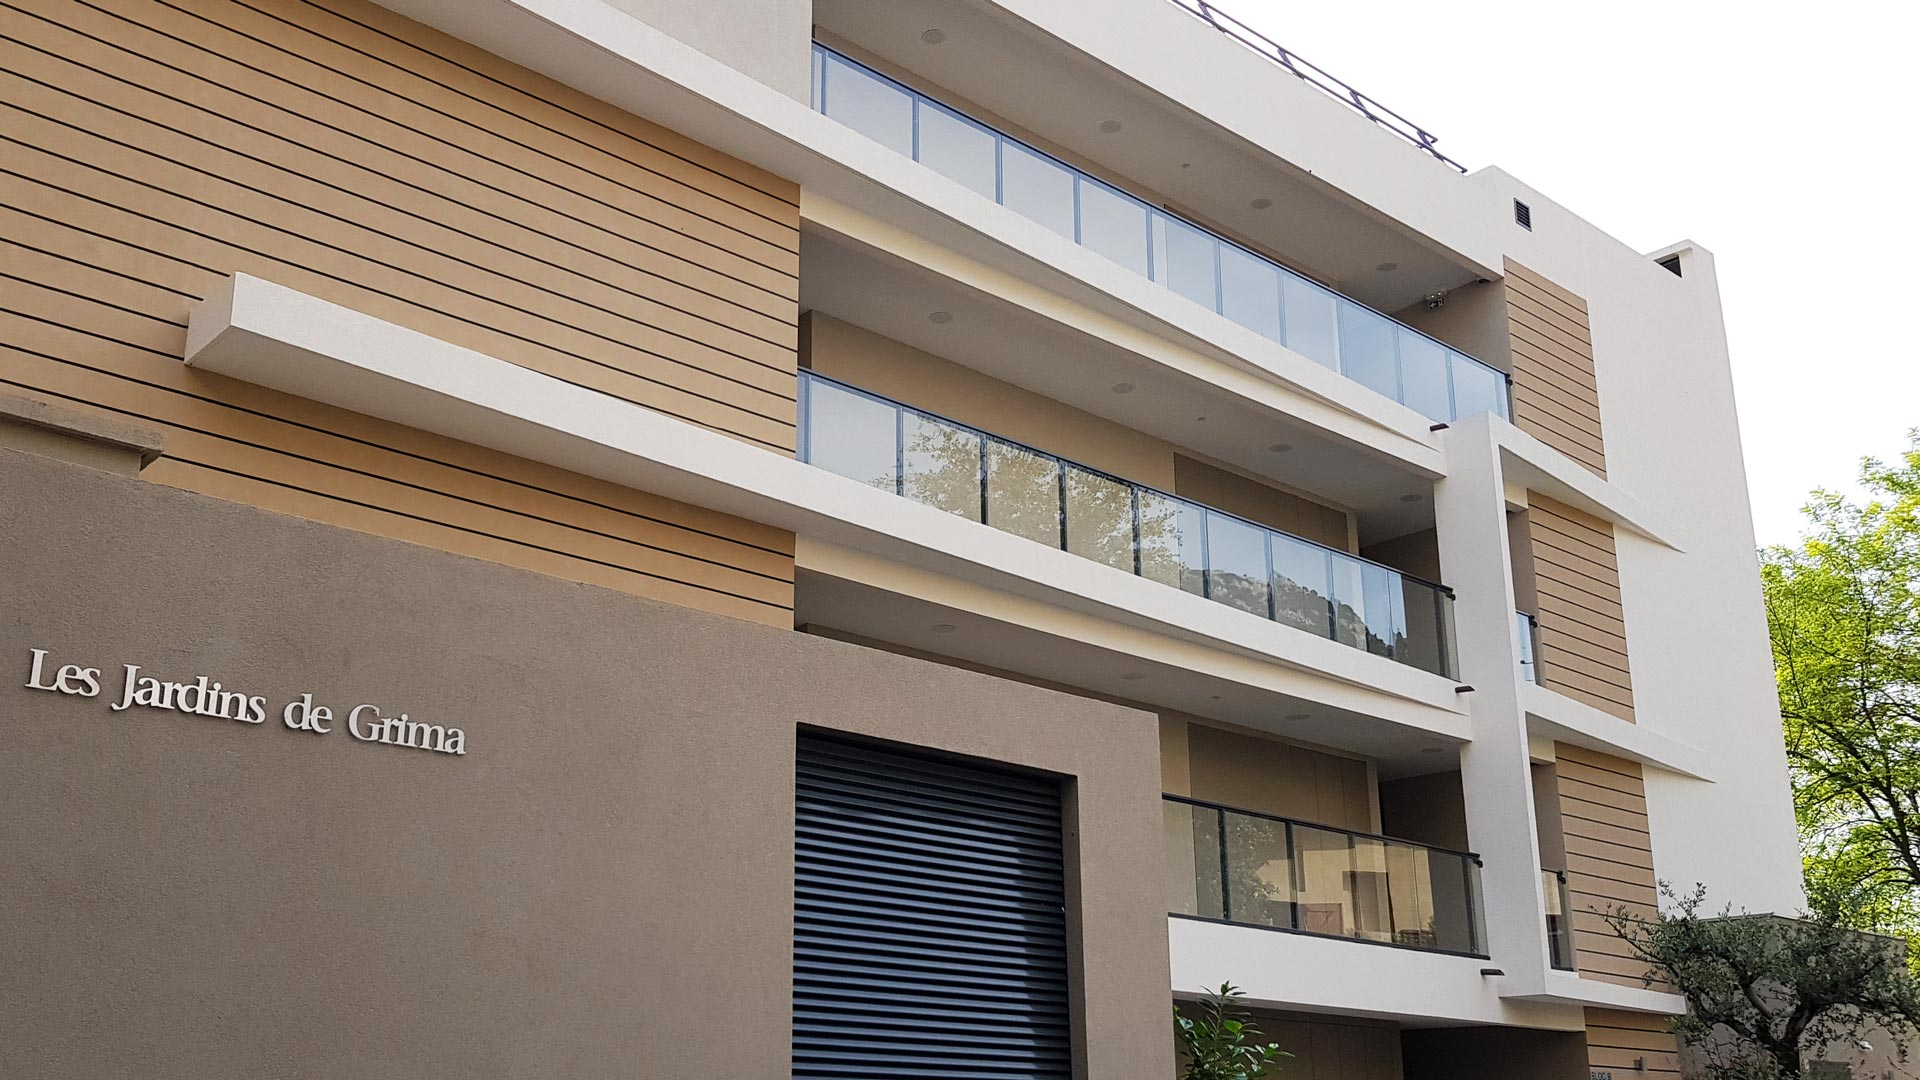 RIPO aluminium railings, framless balustrades, partition walls and blinds in French apartment buildings.